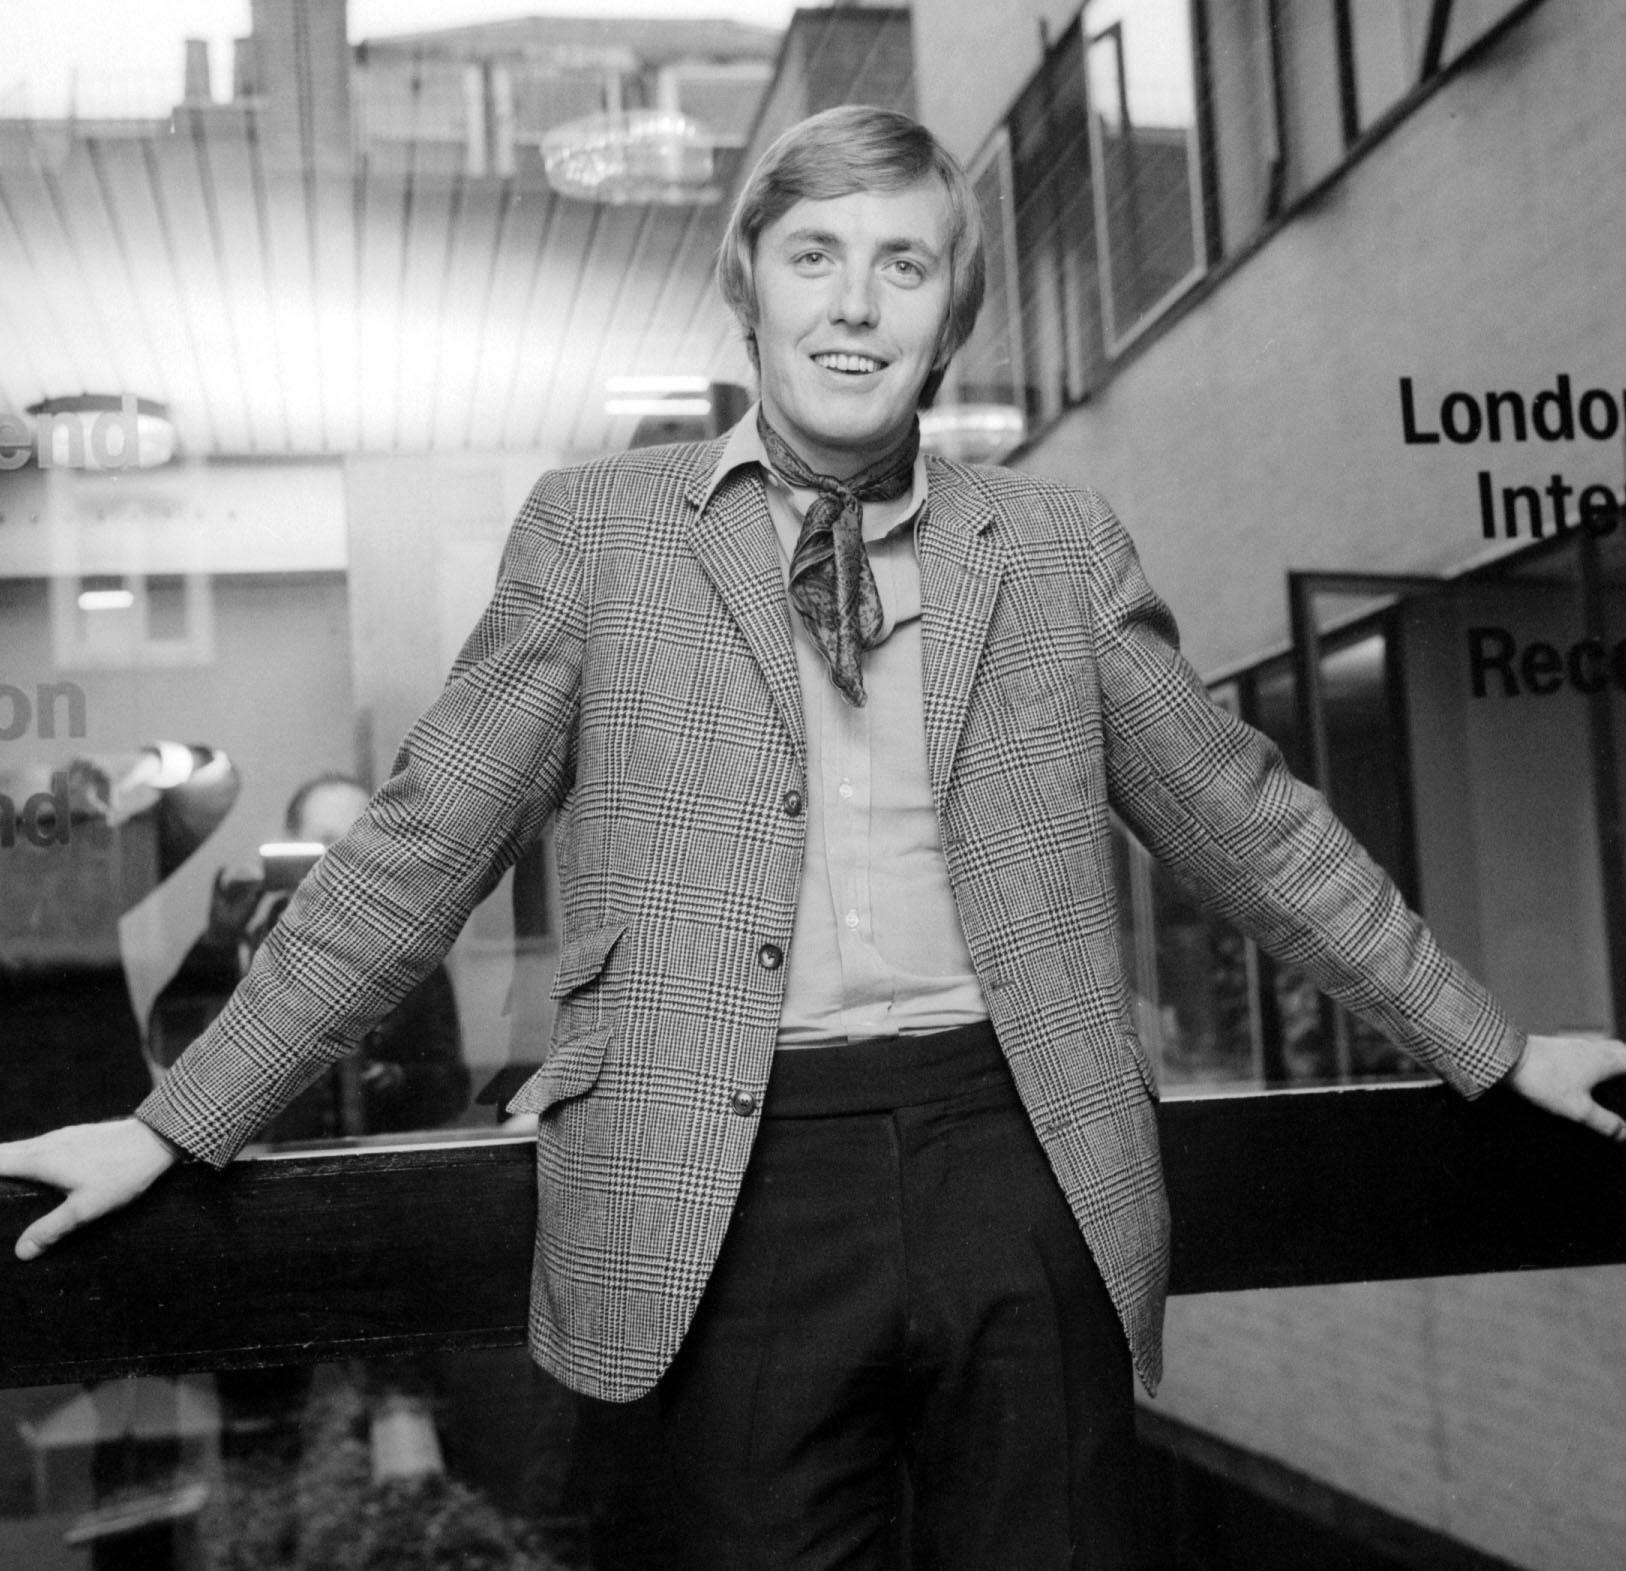 60s TV presenter Simon Dee dies